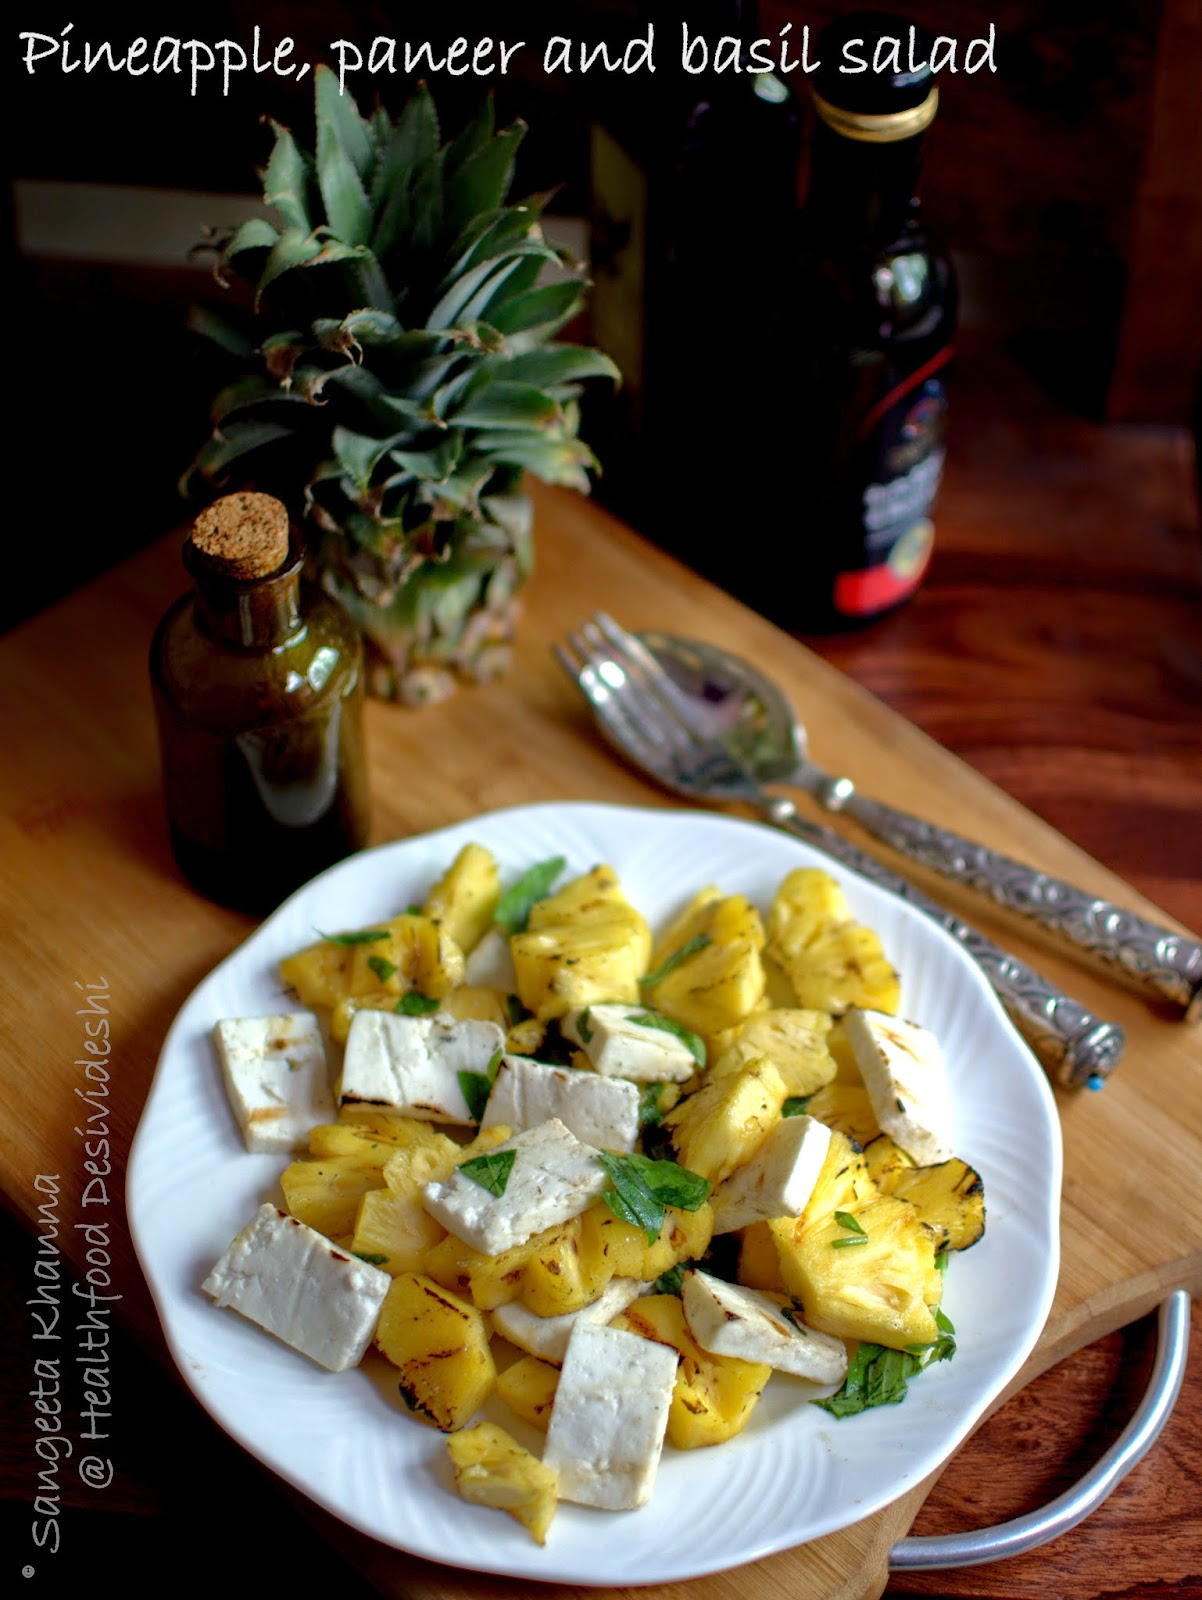 grilled pineapple and paneer salad with basil and pine nuts ...